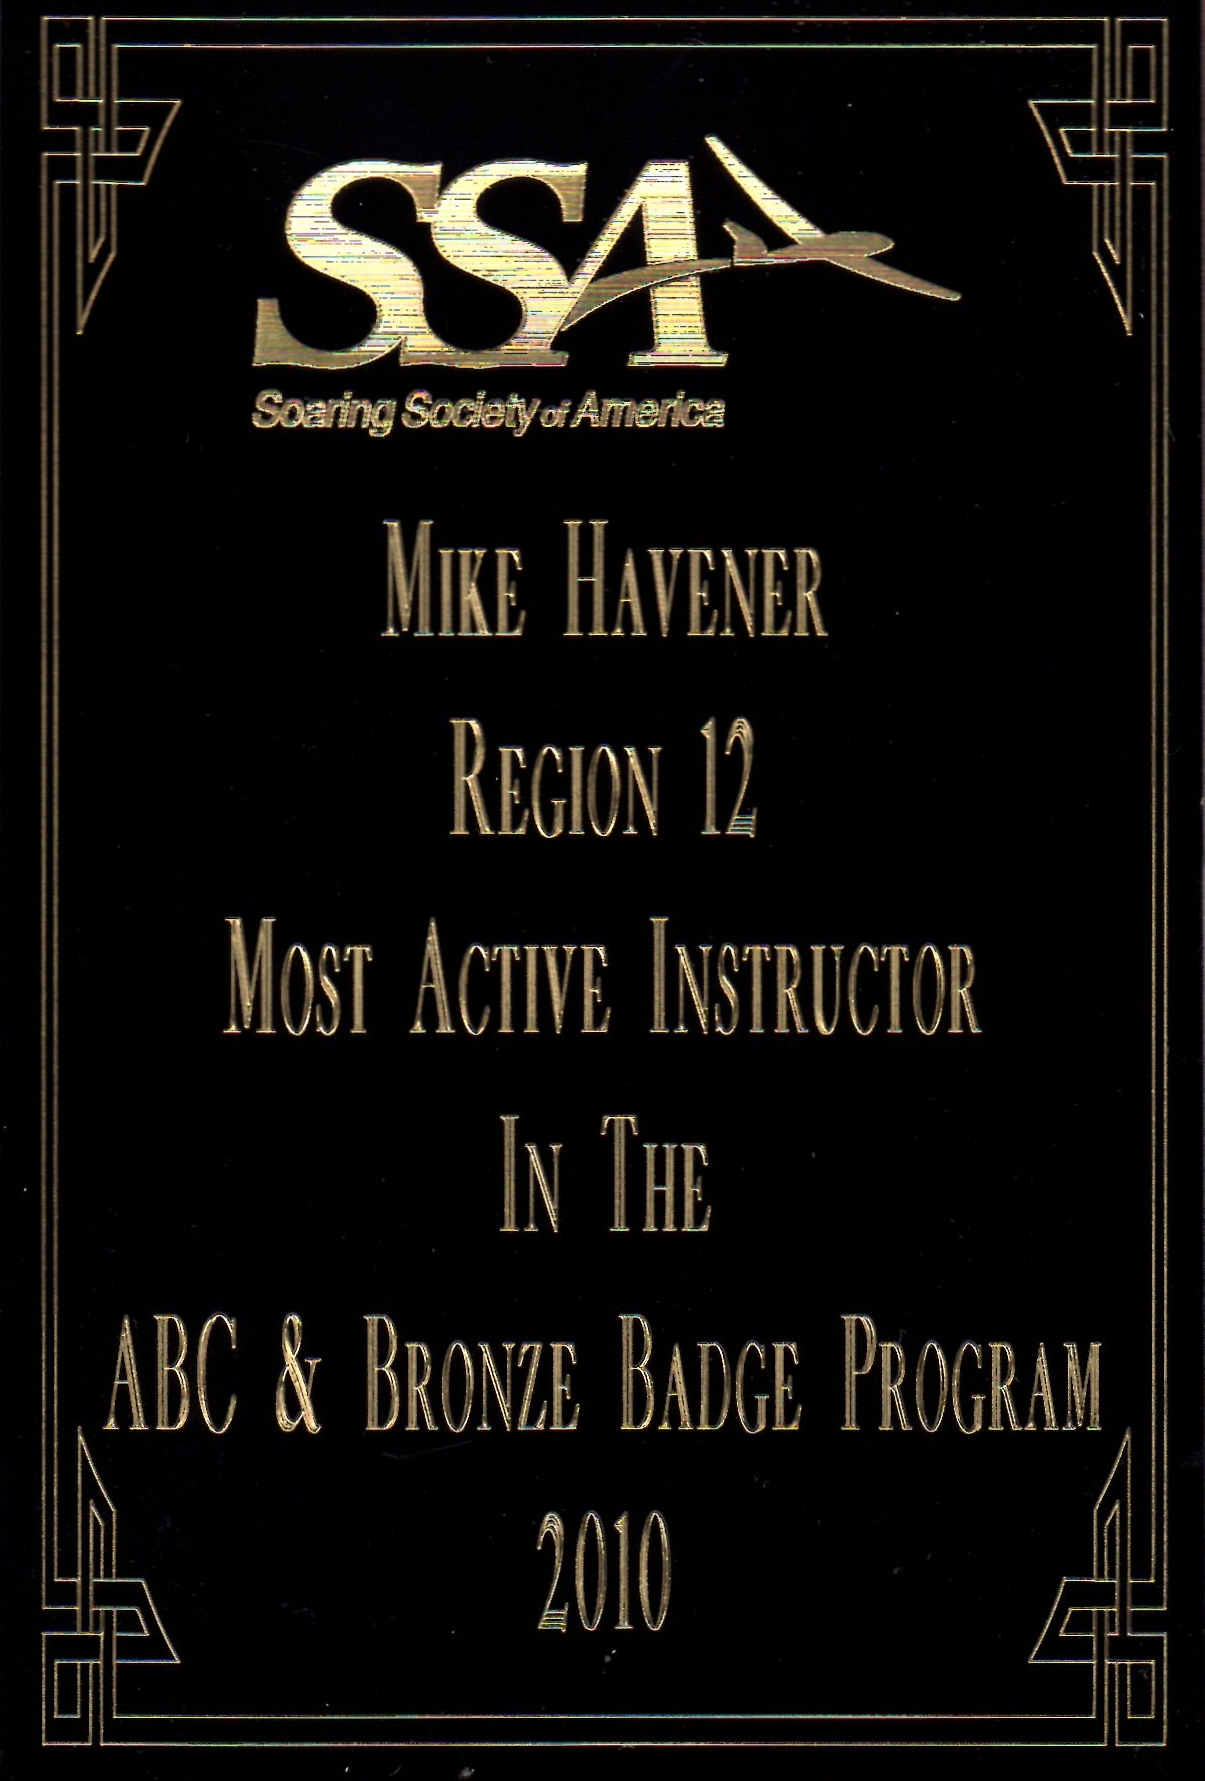 2010 Top Producing SSA Instructor for Region 12 award